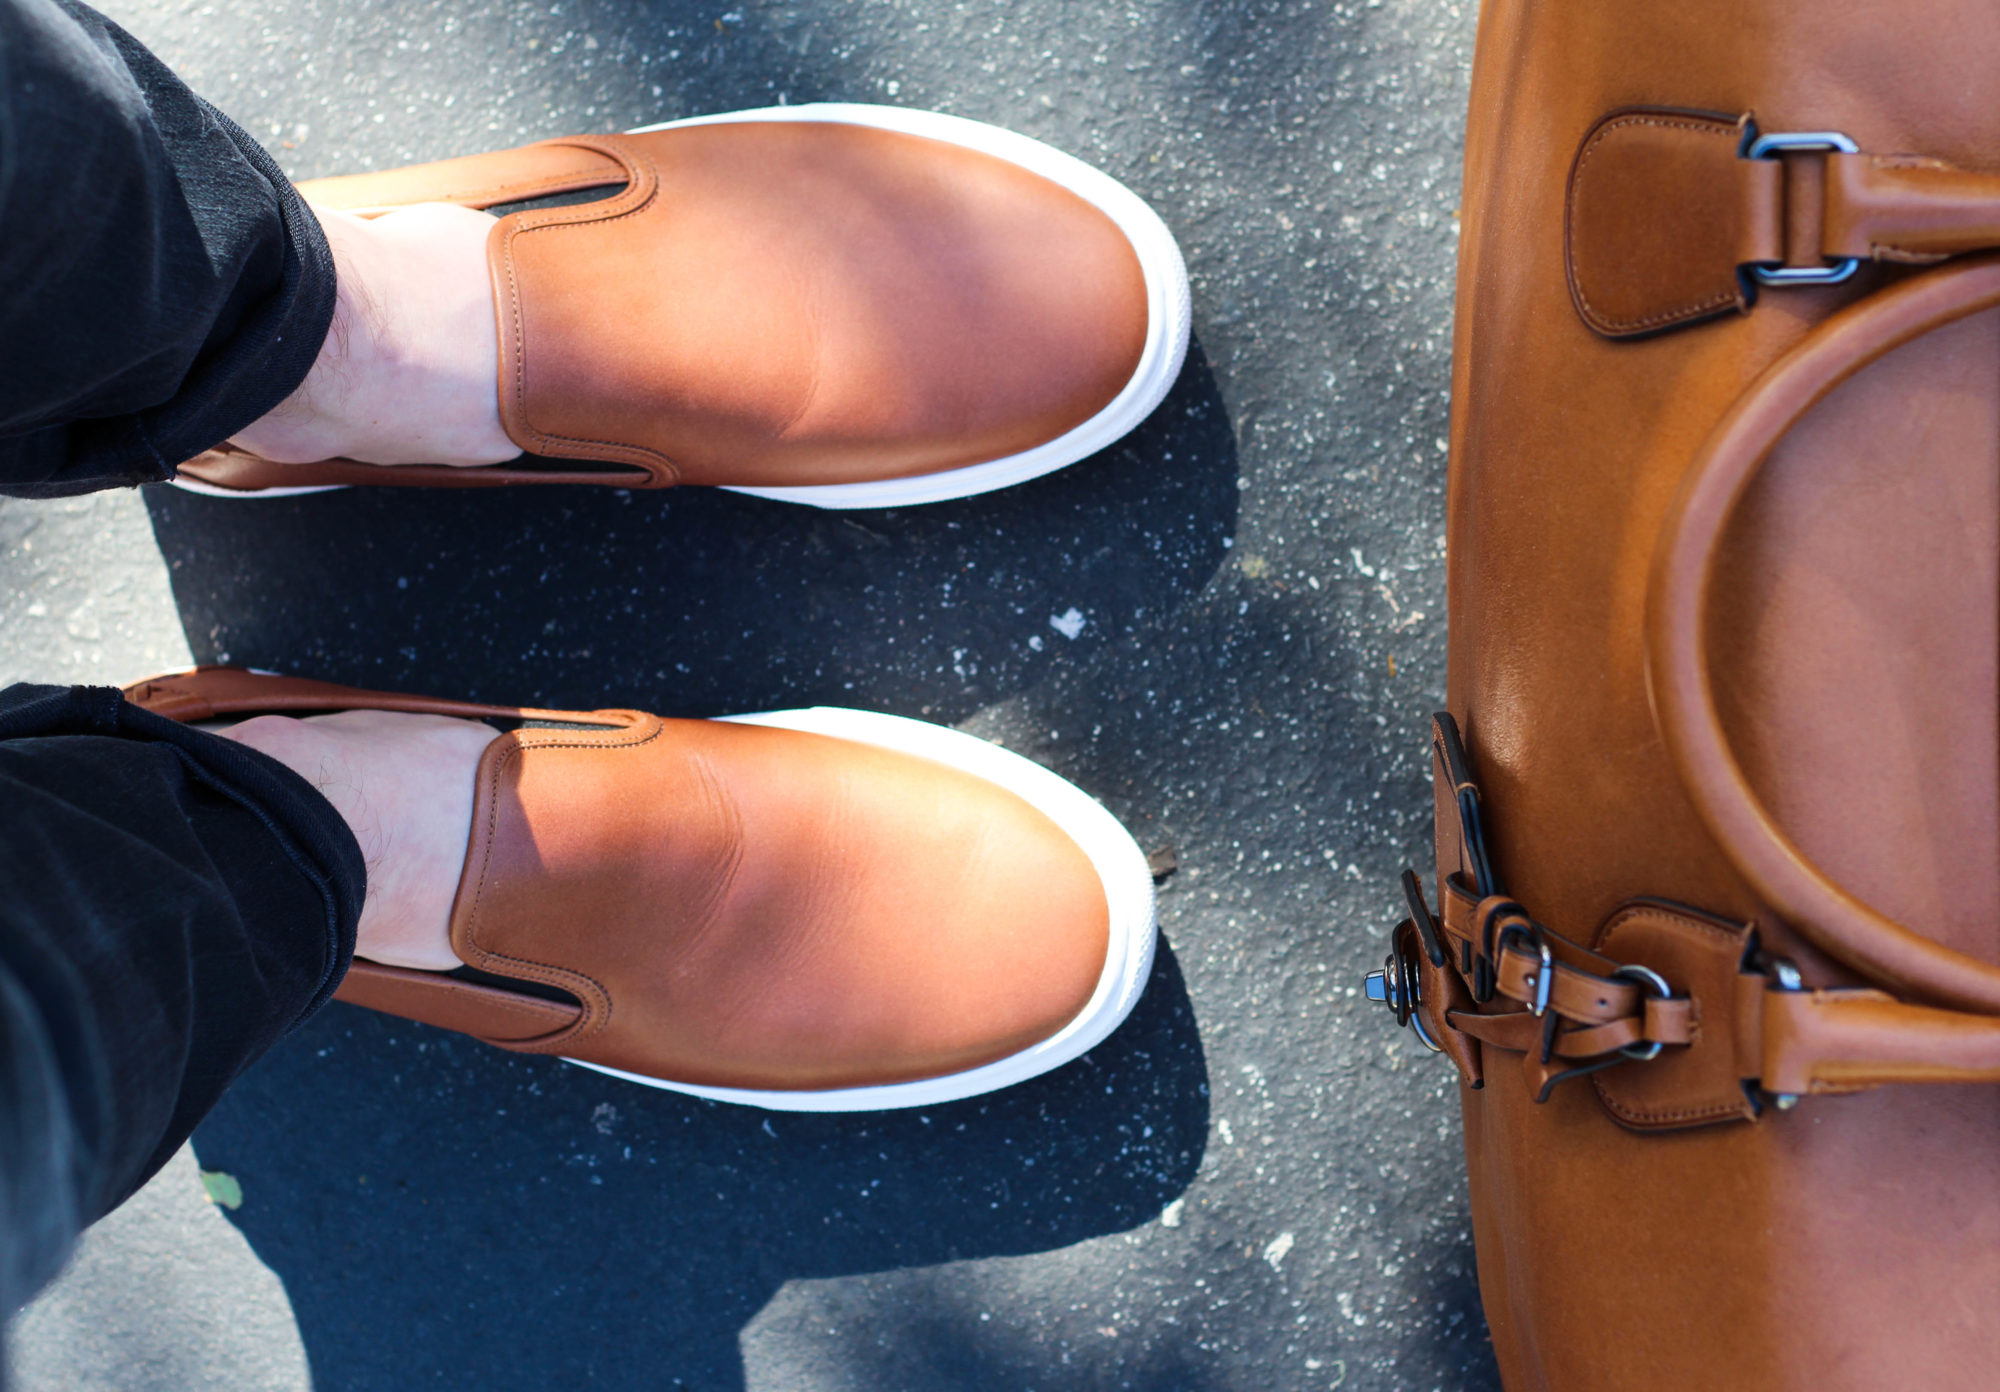 Coach Leather Luggage and Shoes-12